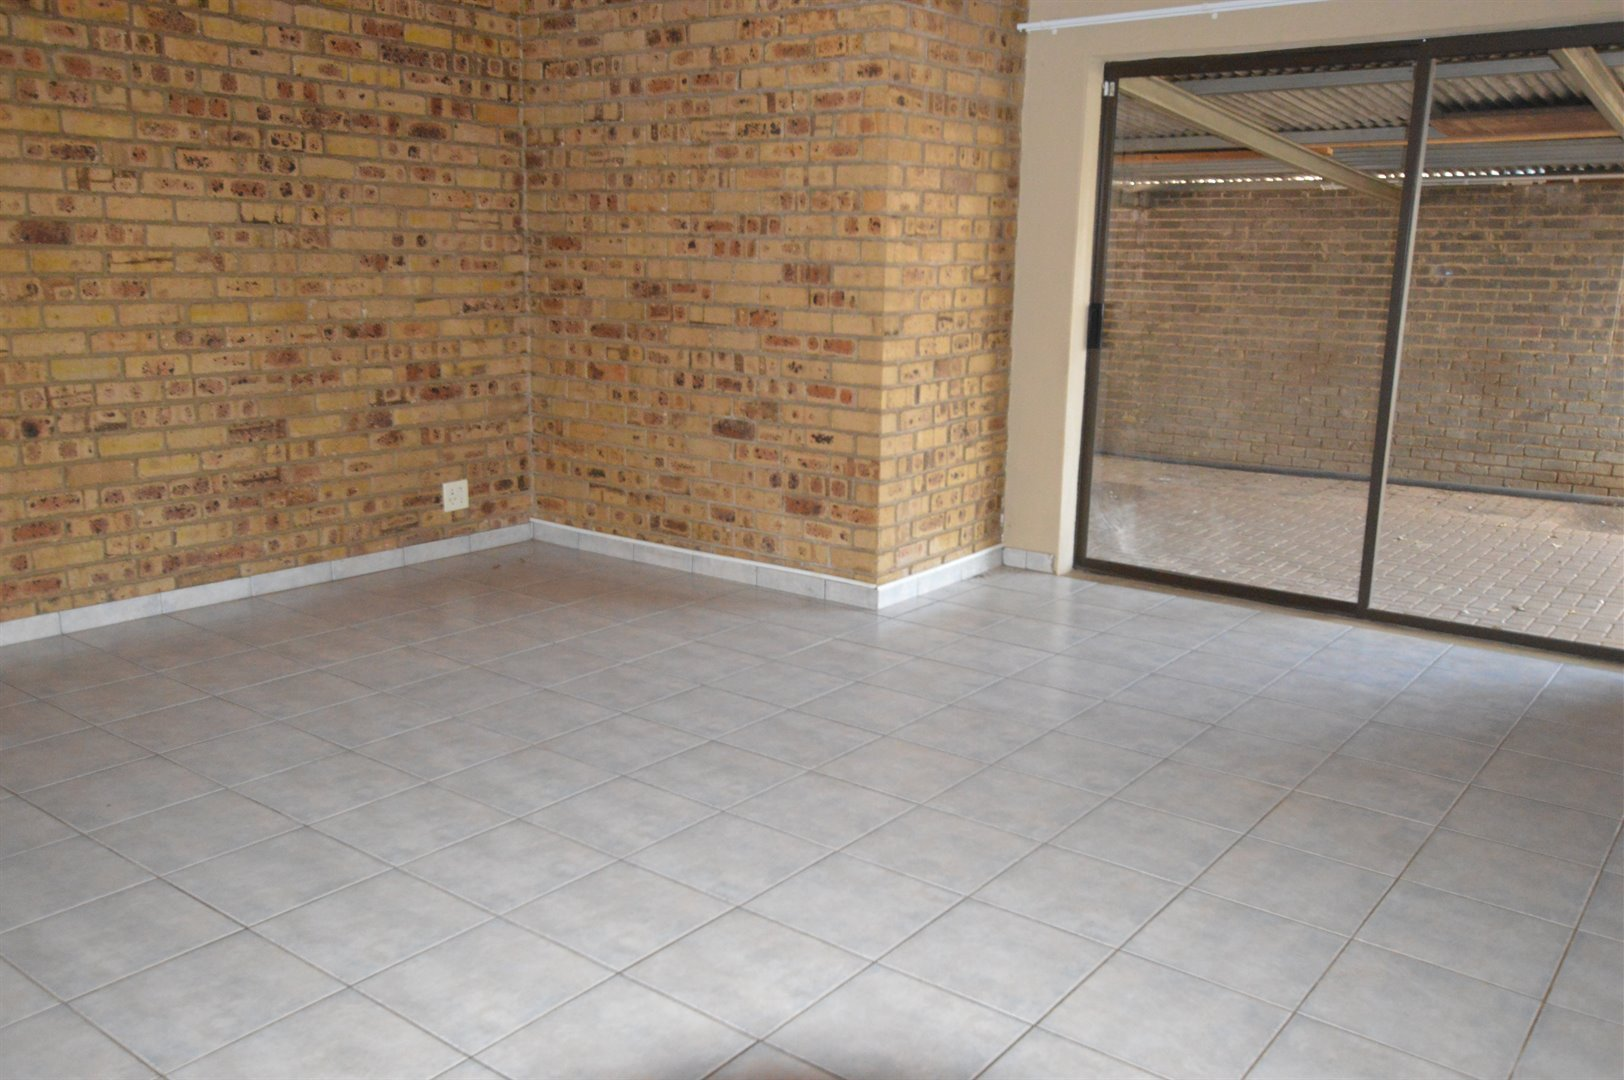 Vanderbijlpark Se 2 property for sale. Ref No: 13623209. Picture no 22